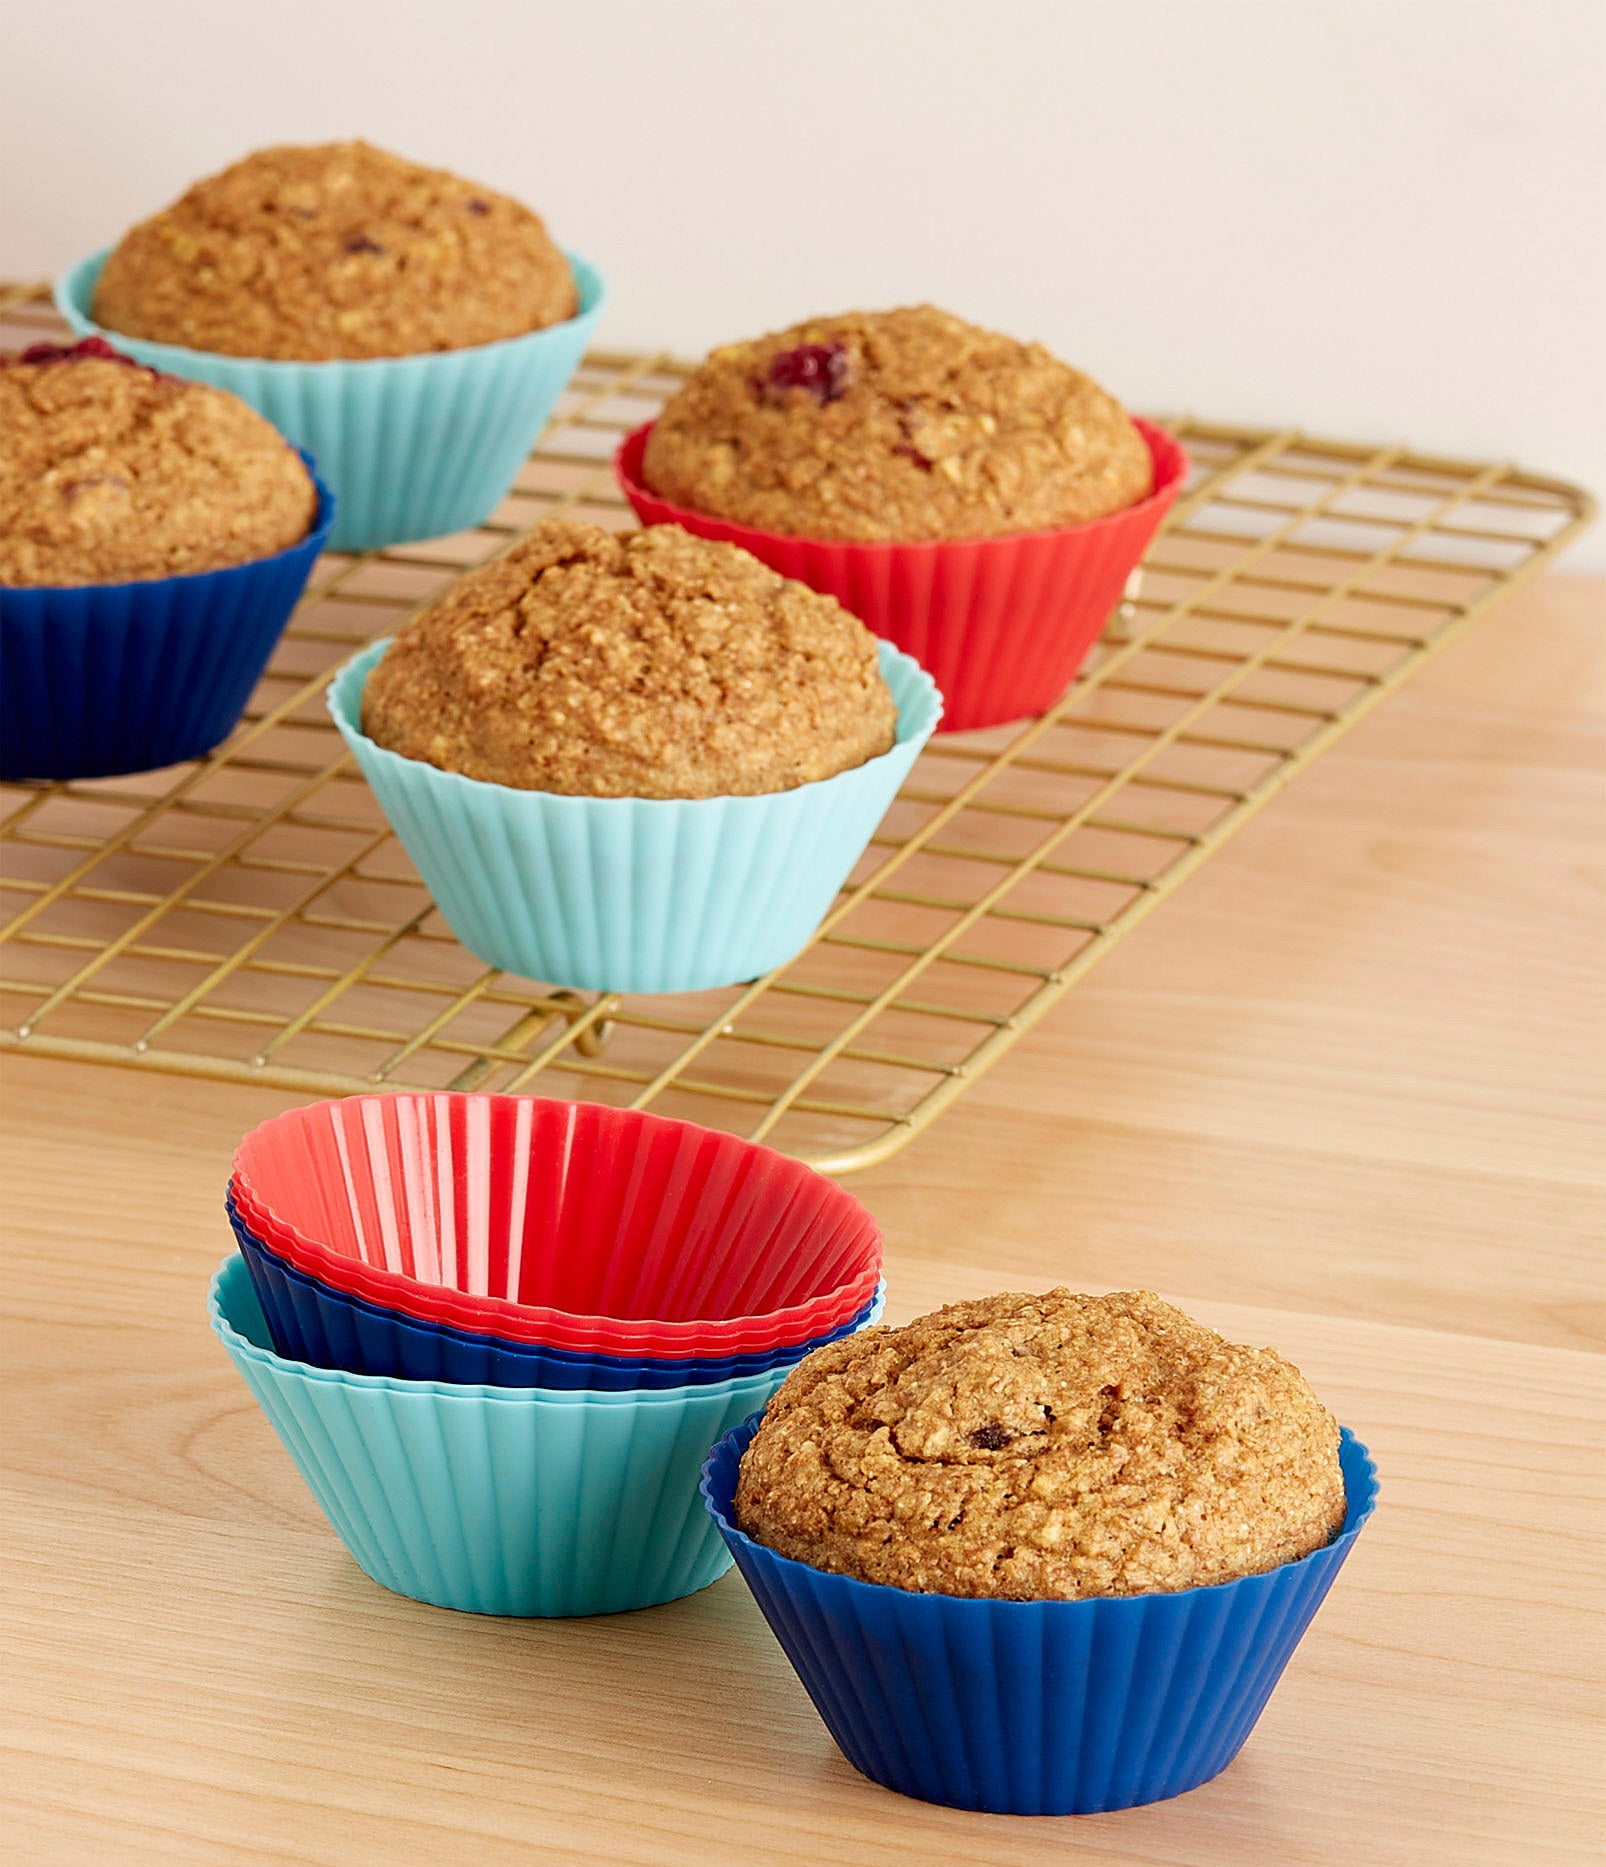 A set of silicone muffin liners with muffins on a baking rack